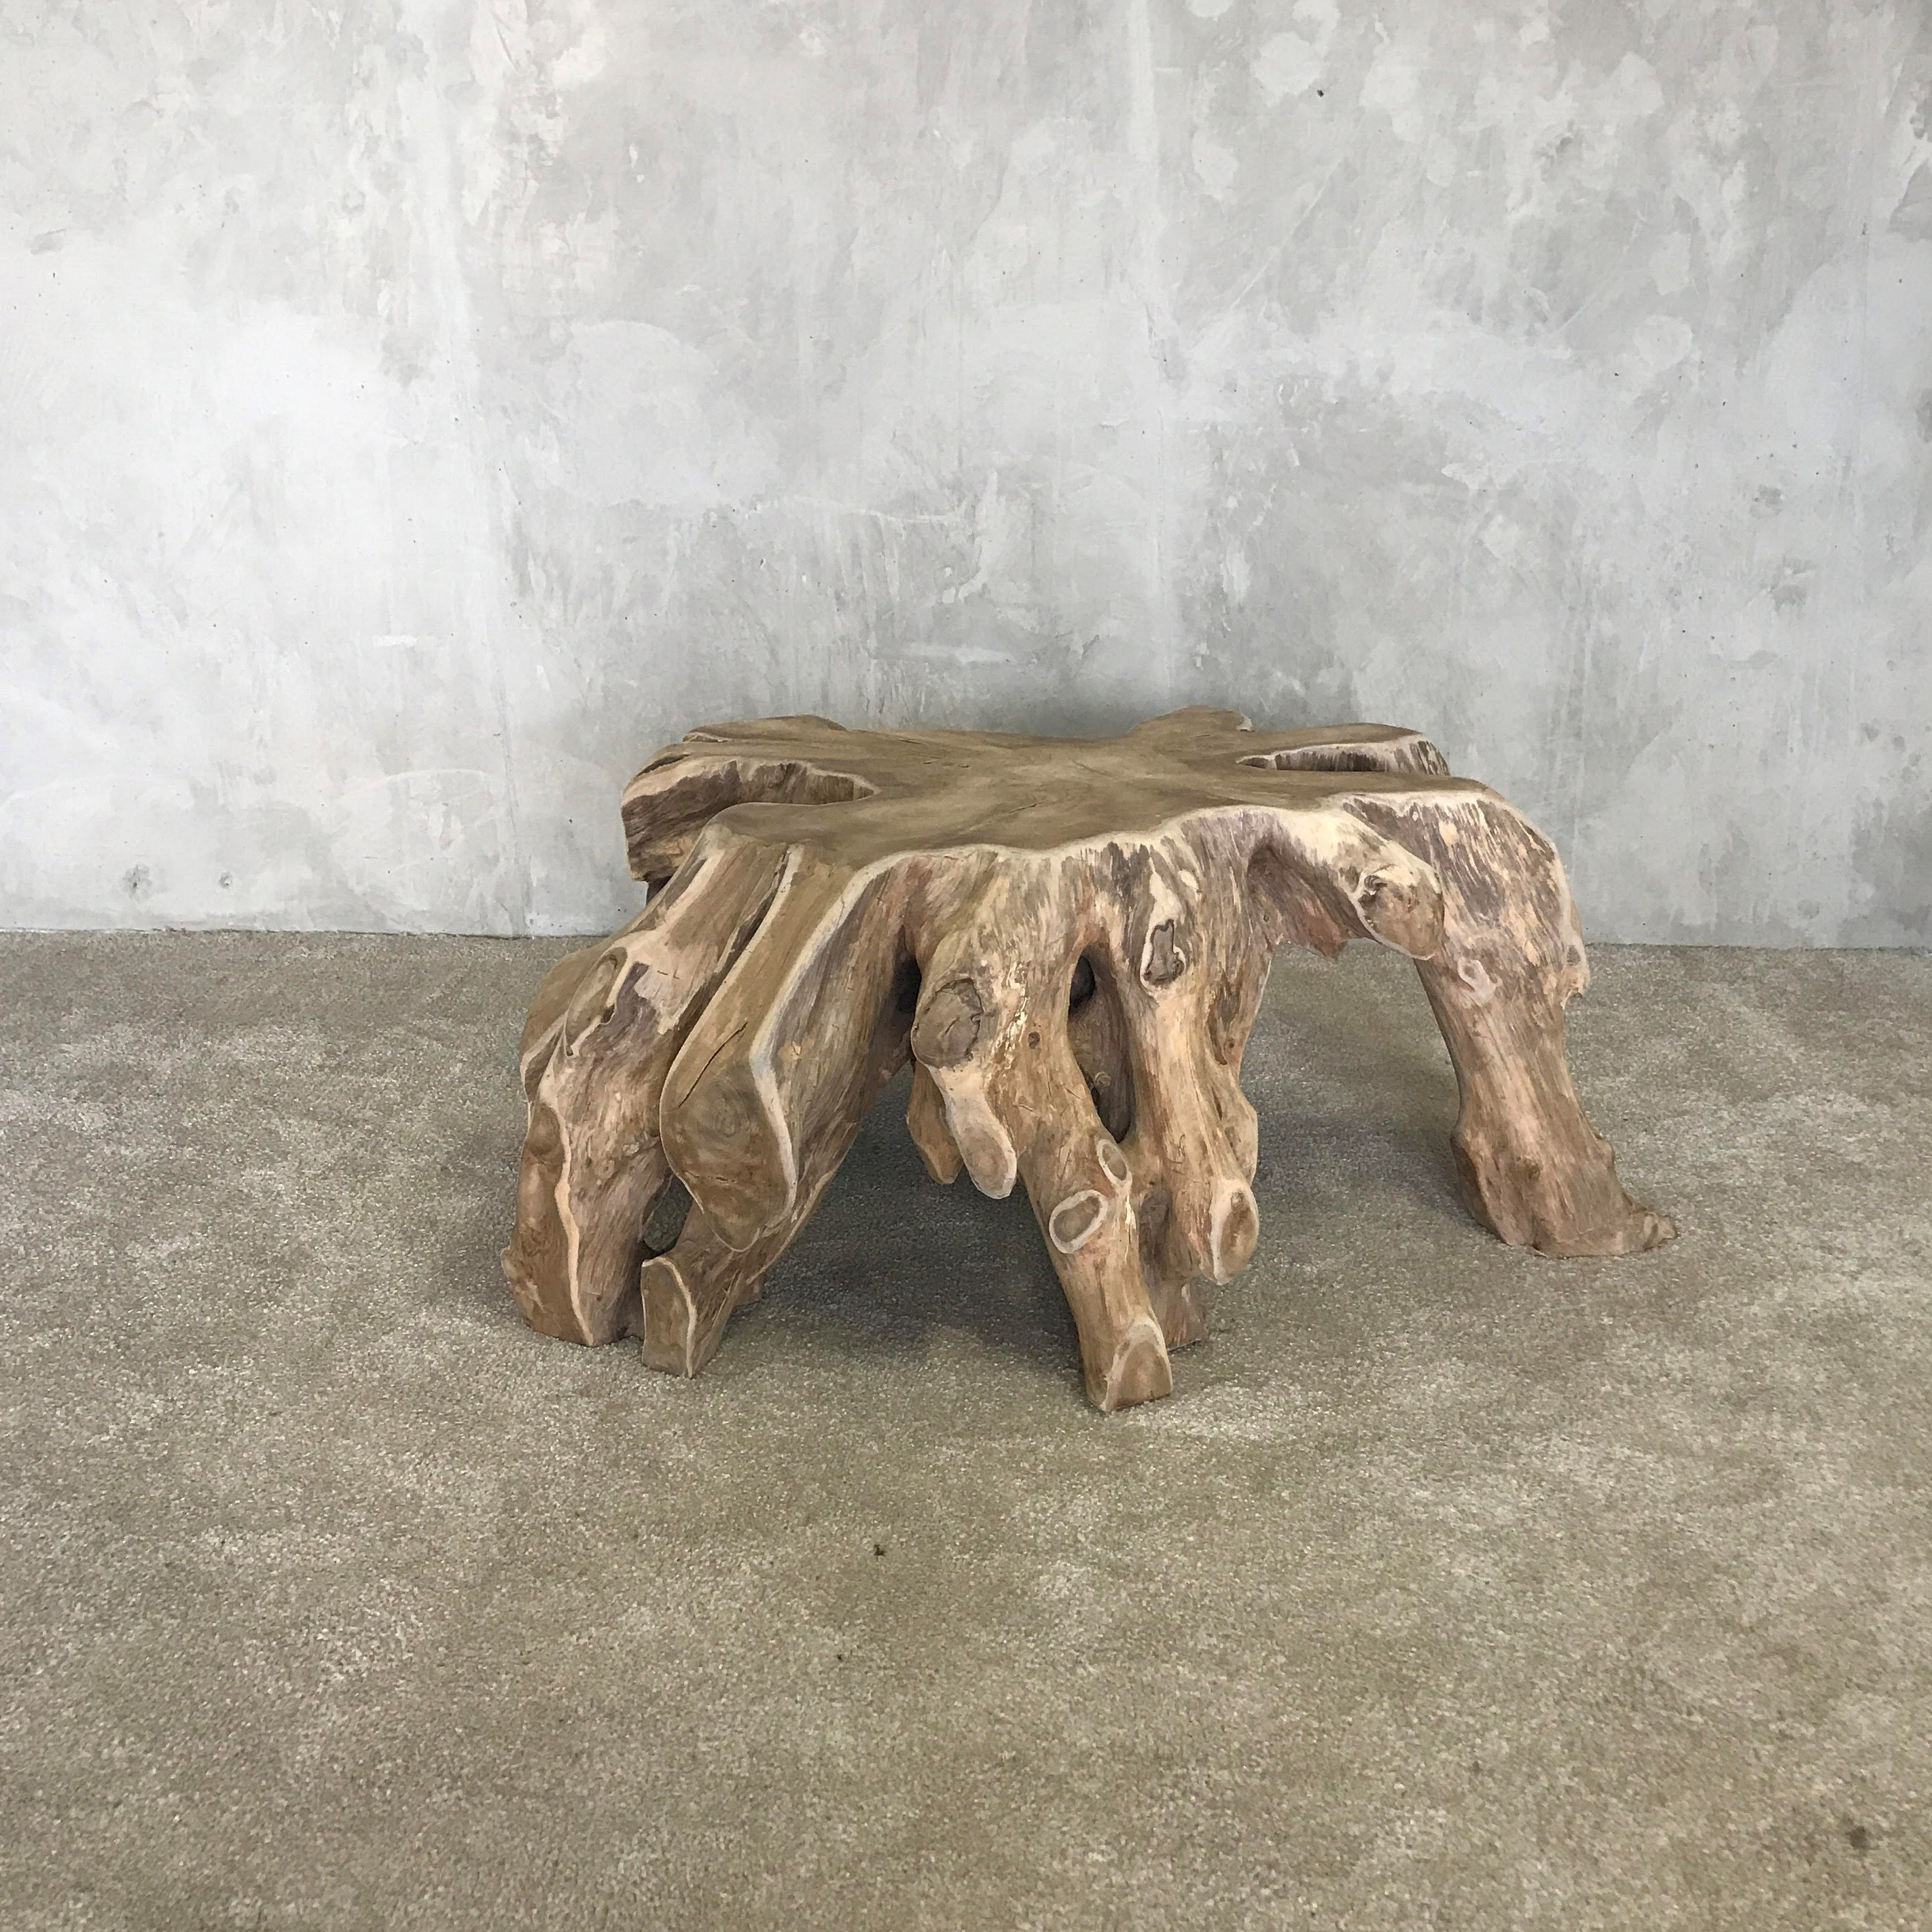 Most Recent Rectangular Barbox Coffee Tables Intended For Tree Stump Coffee Table Best Of Tree Trunk Coffee Table Fresh Coffee (View 9 of 20)